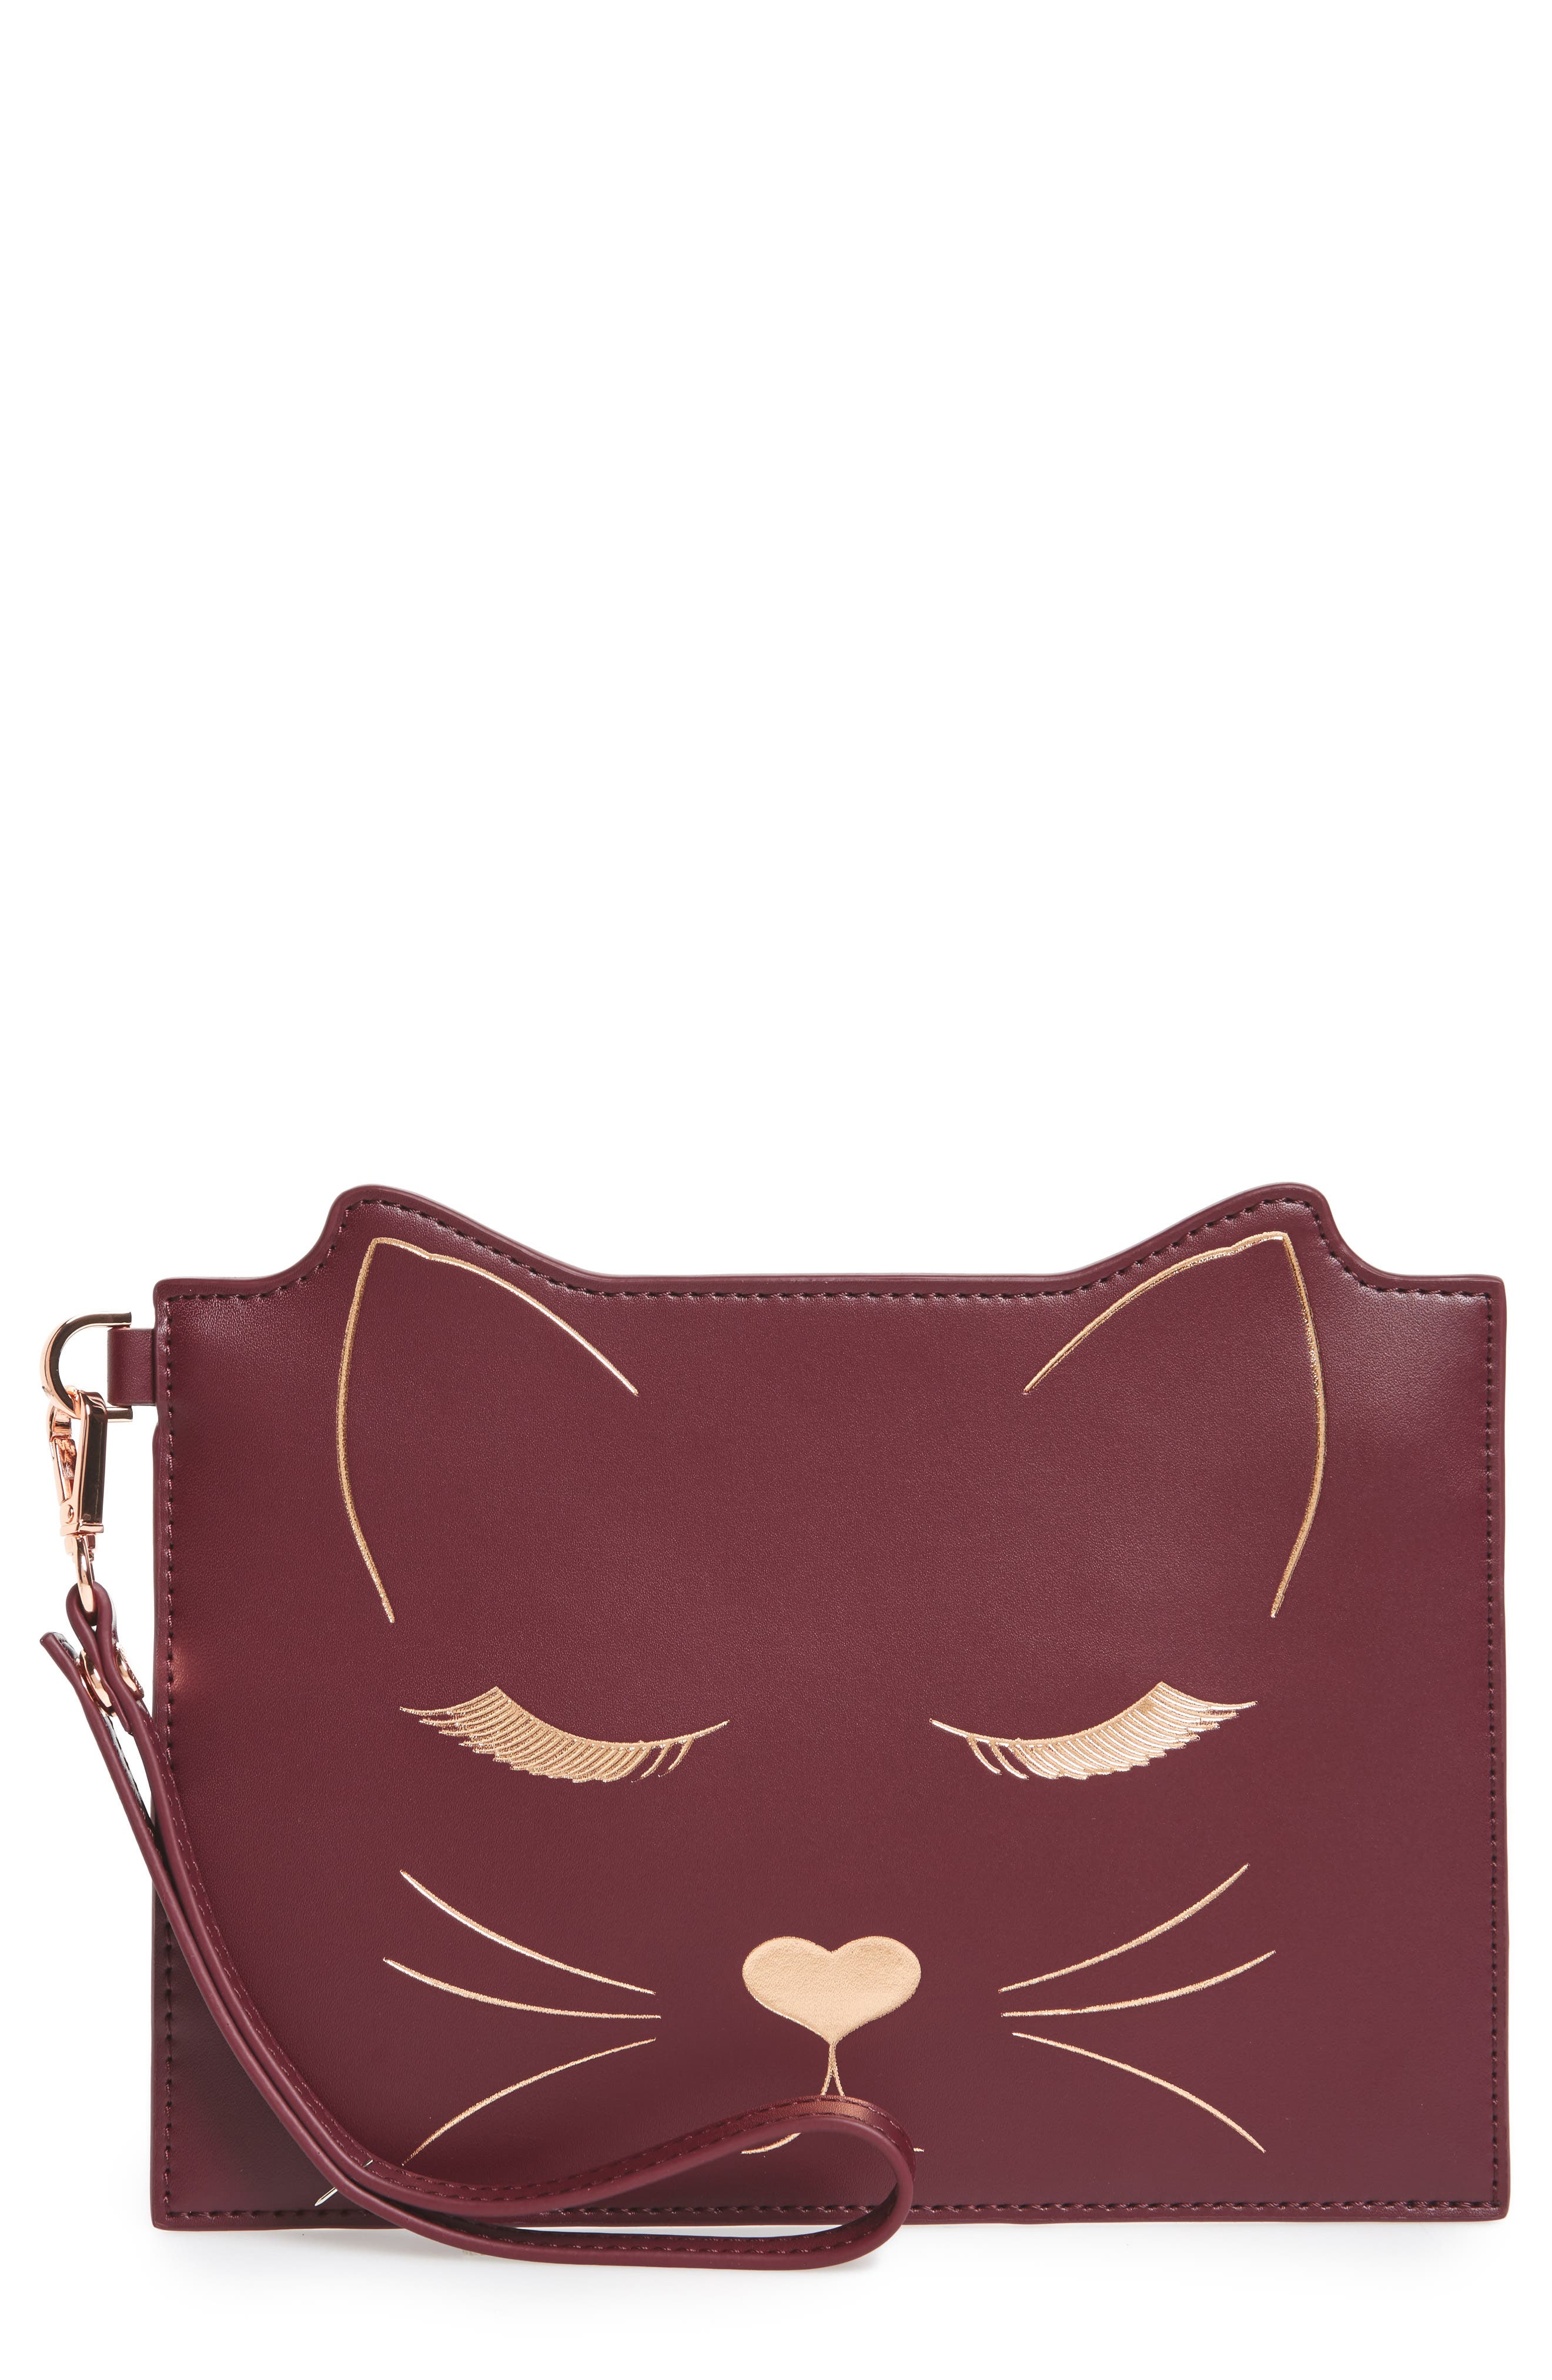 Main Image - Ted Baker London Felixea Leather Pouch